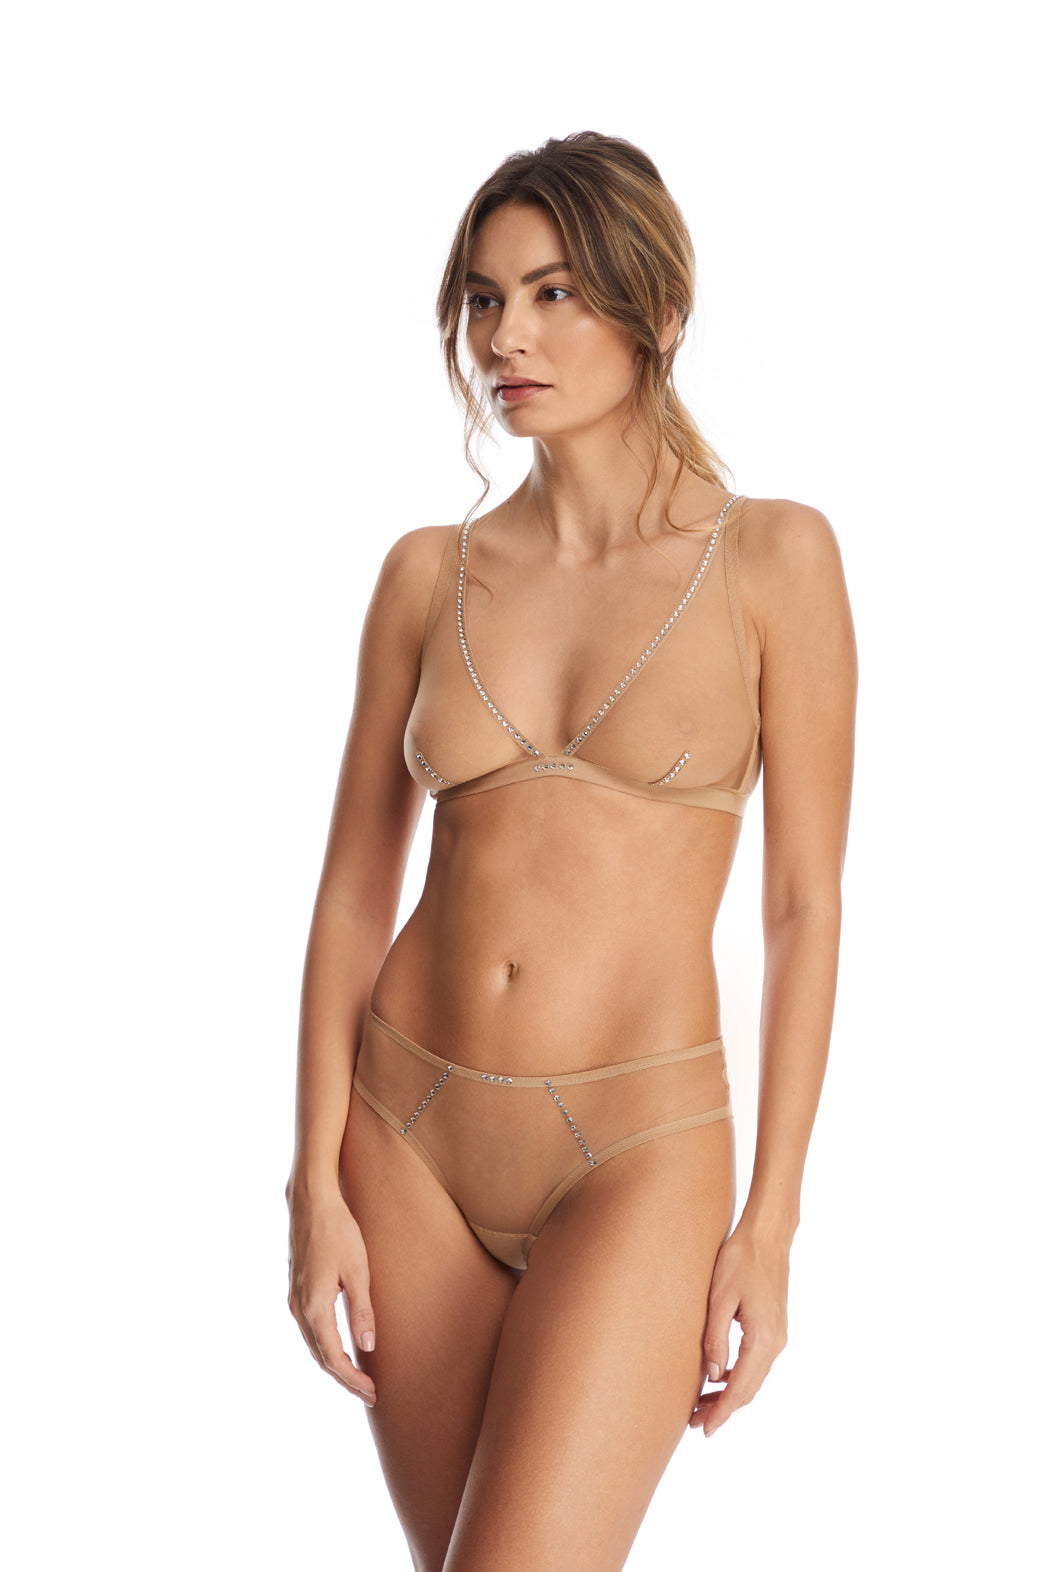 I.D. Sarrieri tulle triangle bra and brief with Swarovski Crystals in Nude